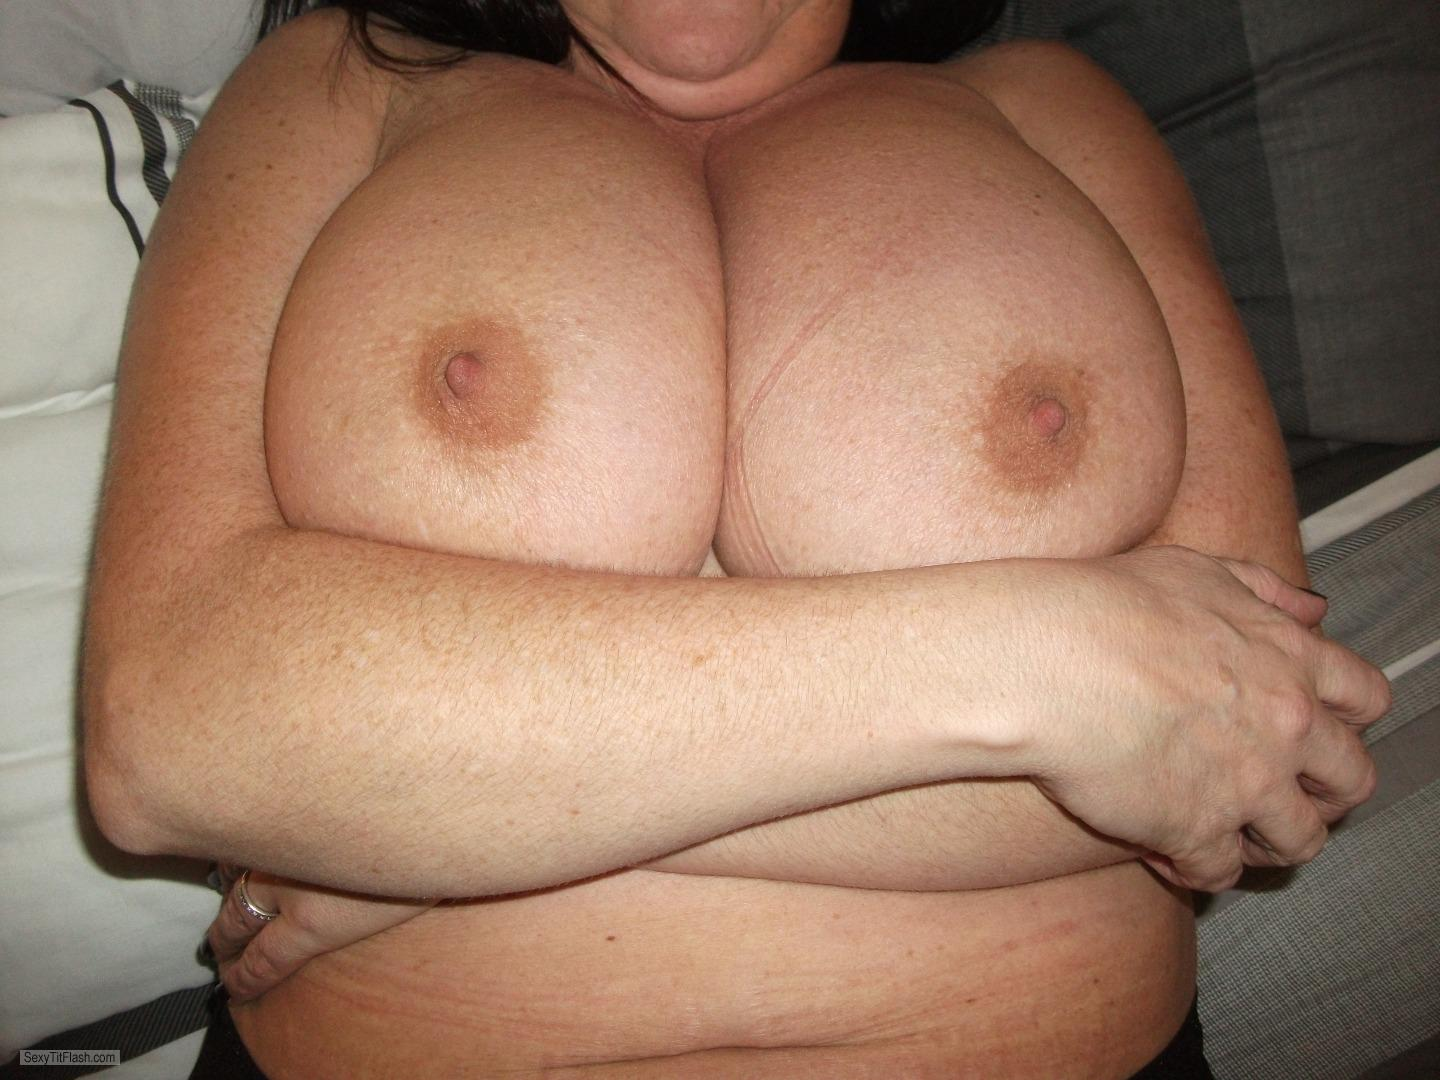 Tit Flash: My Extremely Big Tits - Topless Kersty from United Kingdom